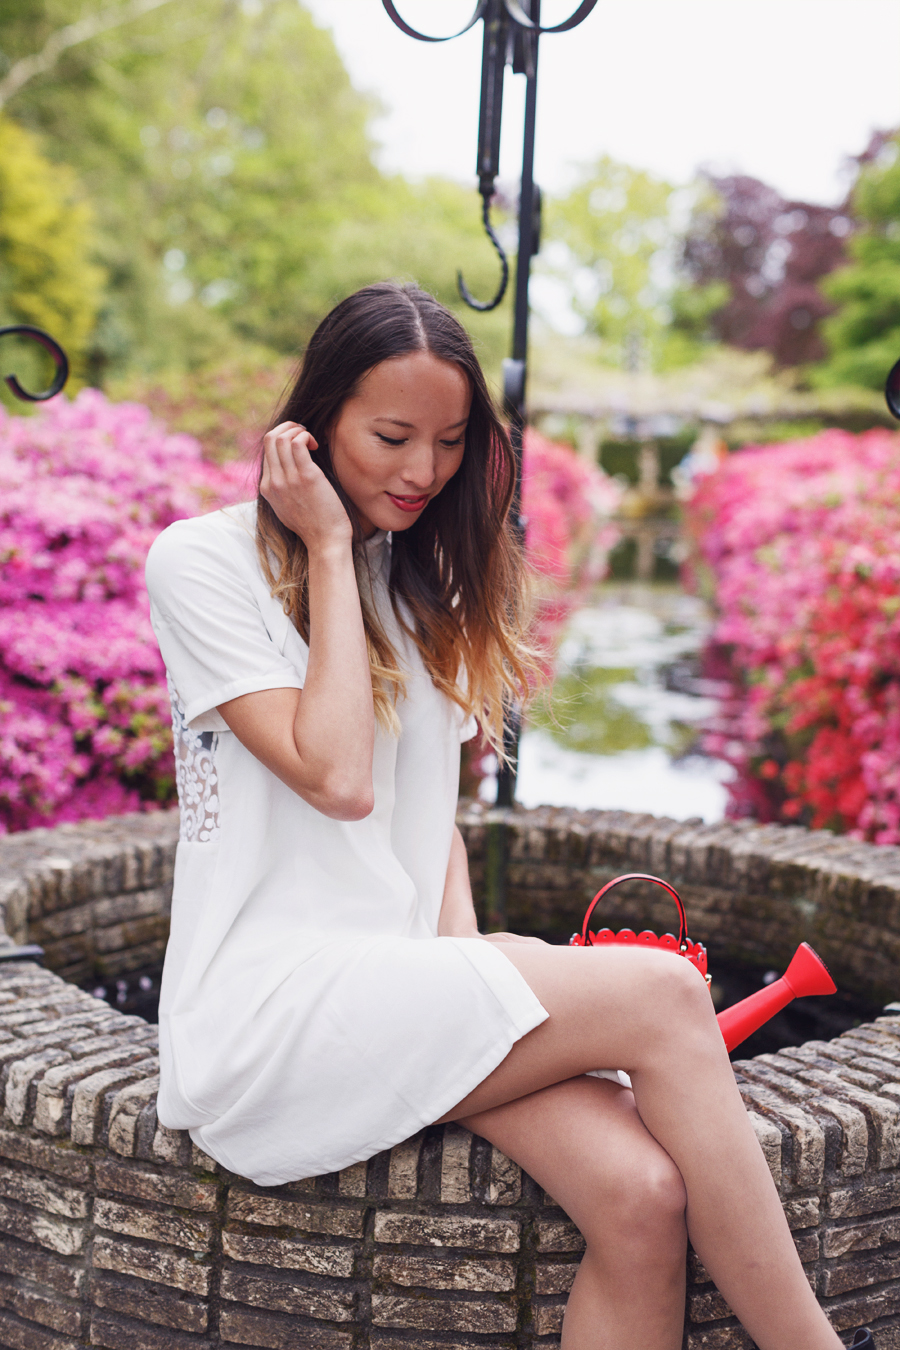 Girl in white shirt dress by wishing well